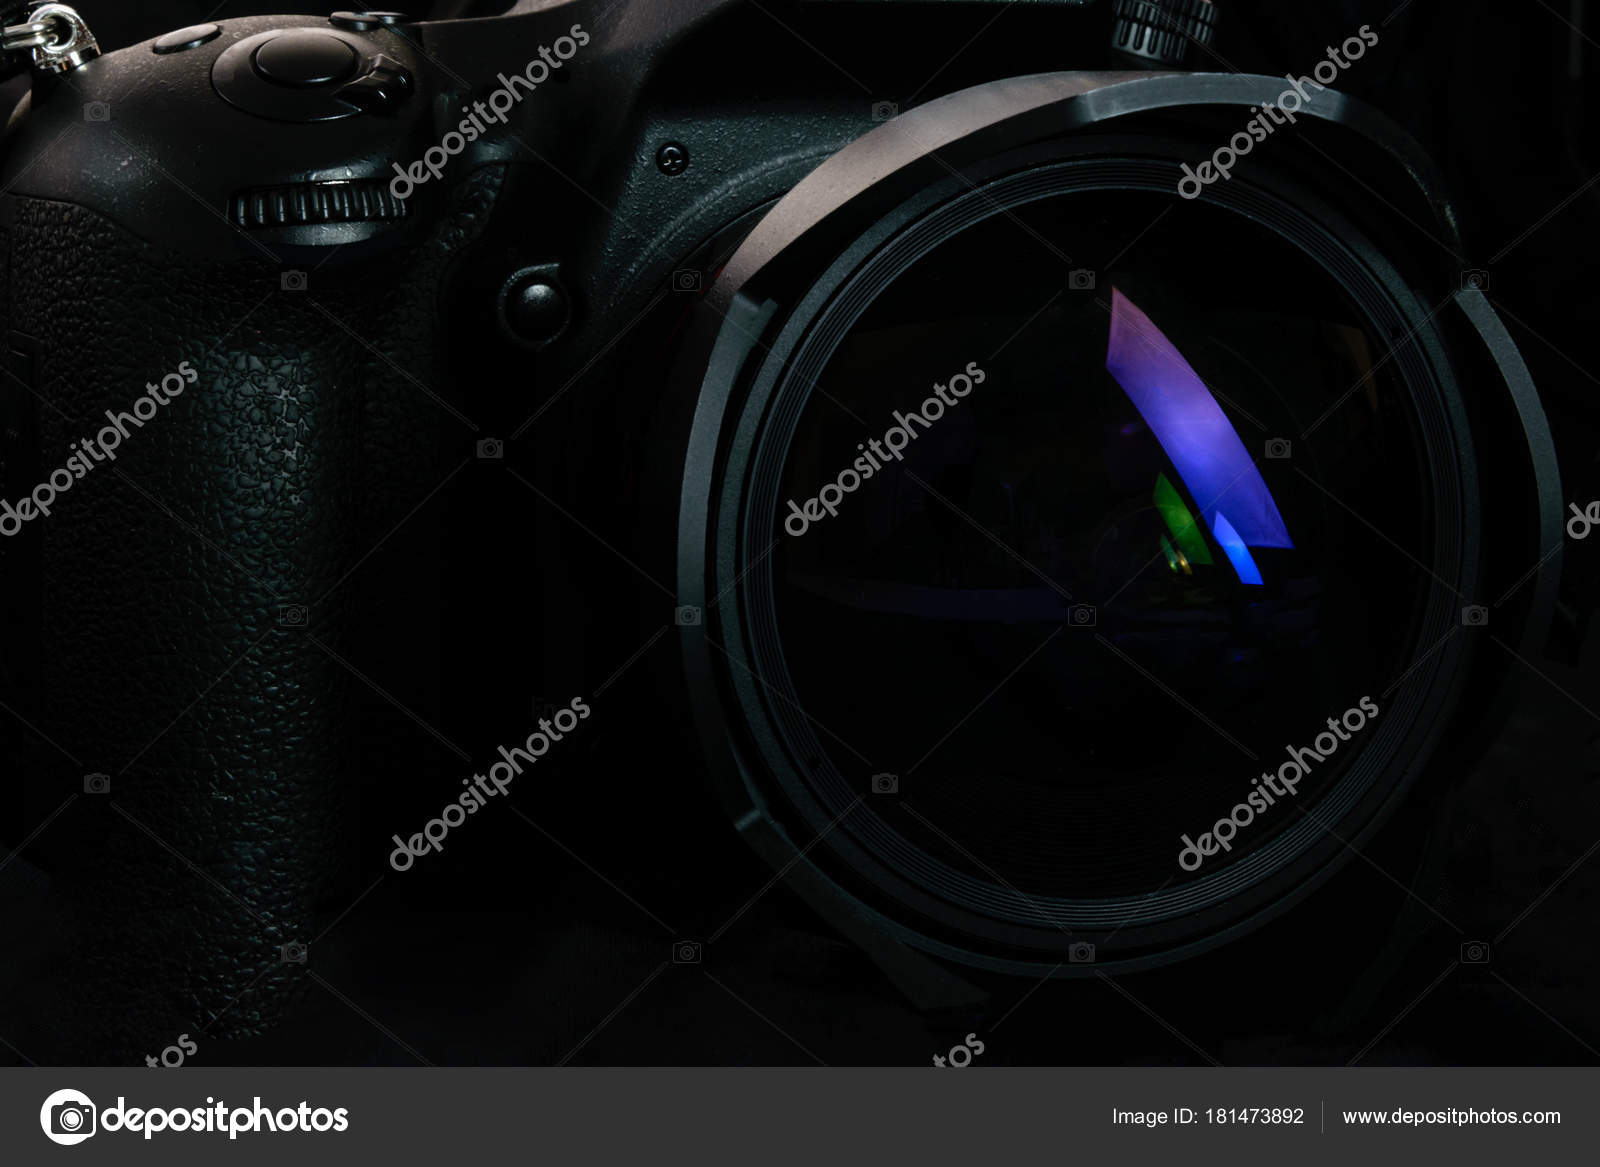 Professional Dslr Camera Background Stock Photo Wdnet 181473892